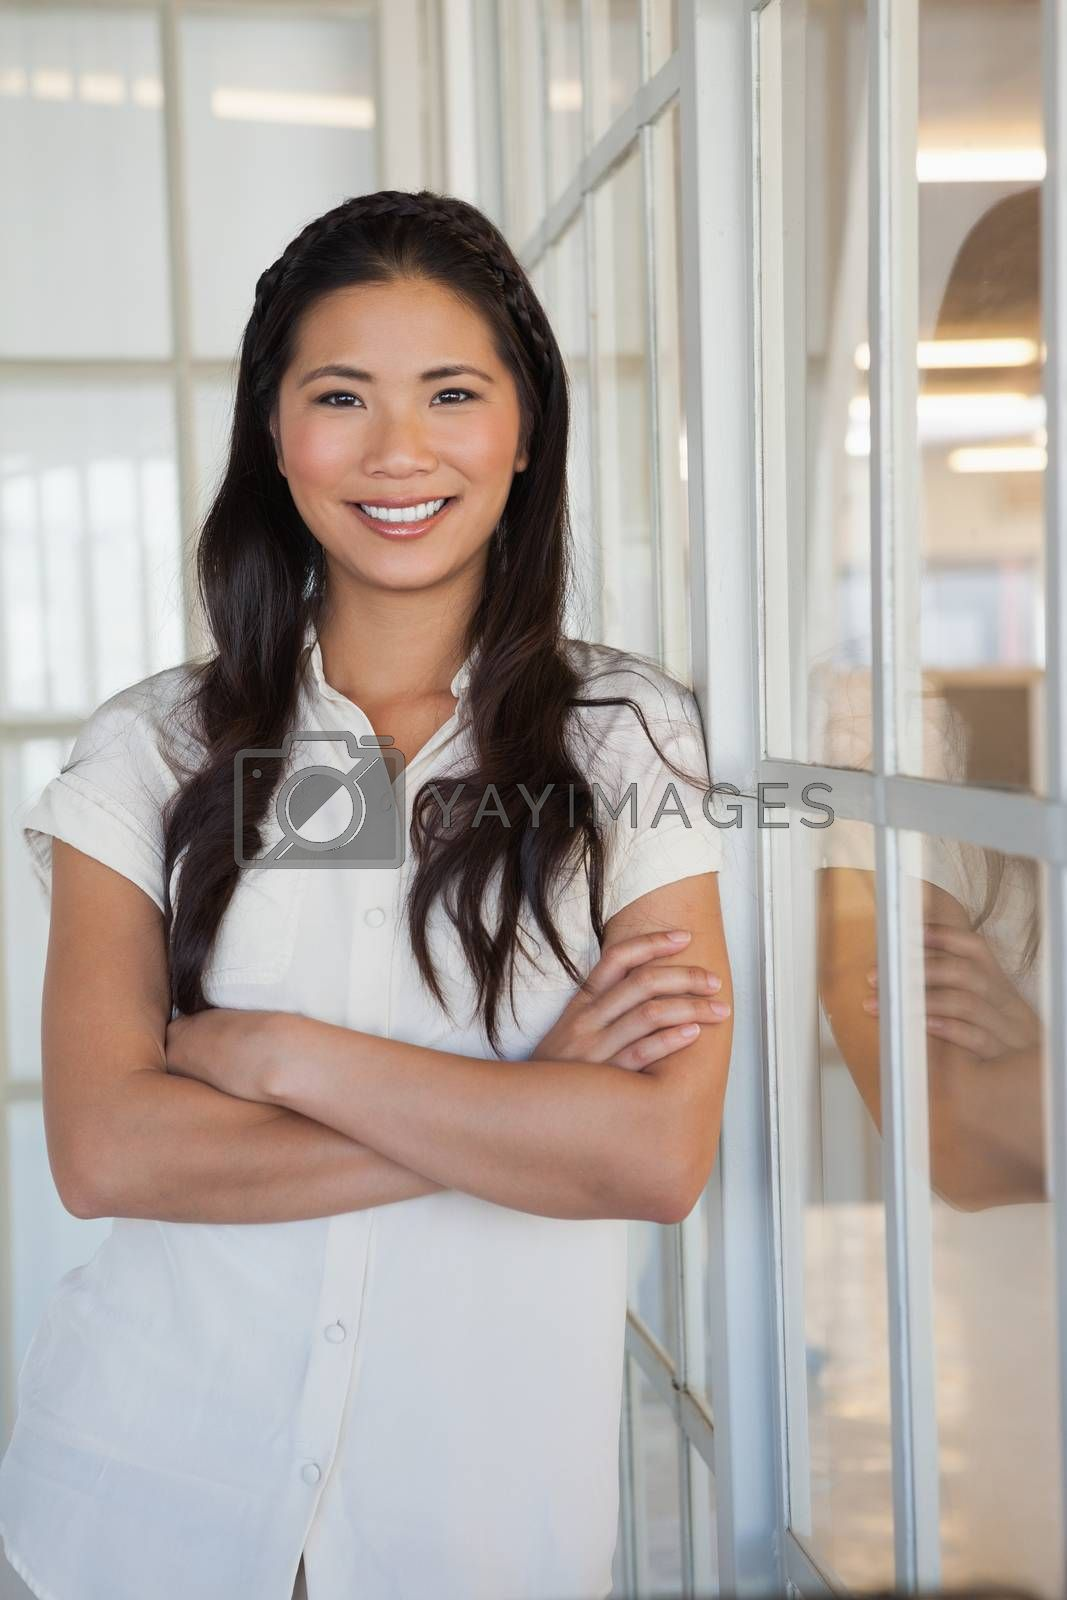 Royalty free image of Casual businesswoman smiling at camera with arms crossed by Wavebreakmedia